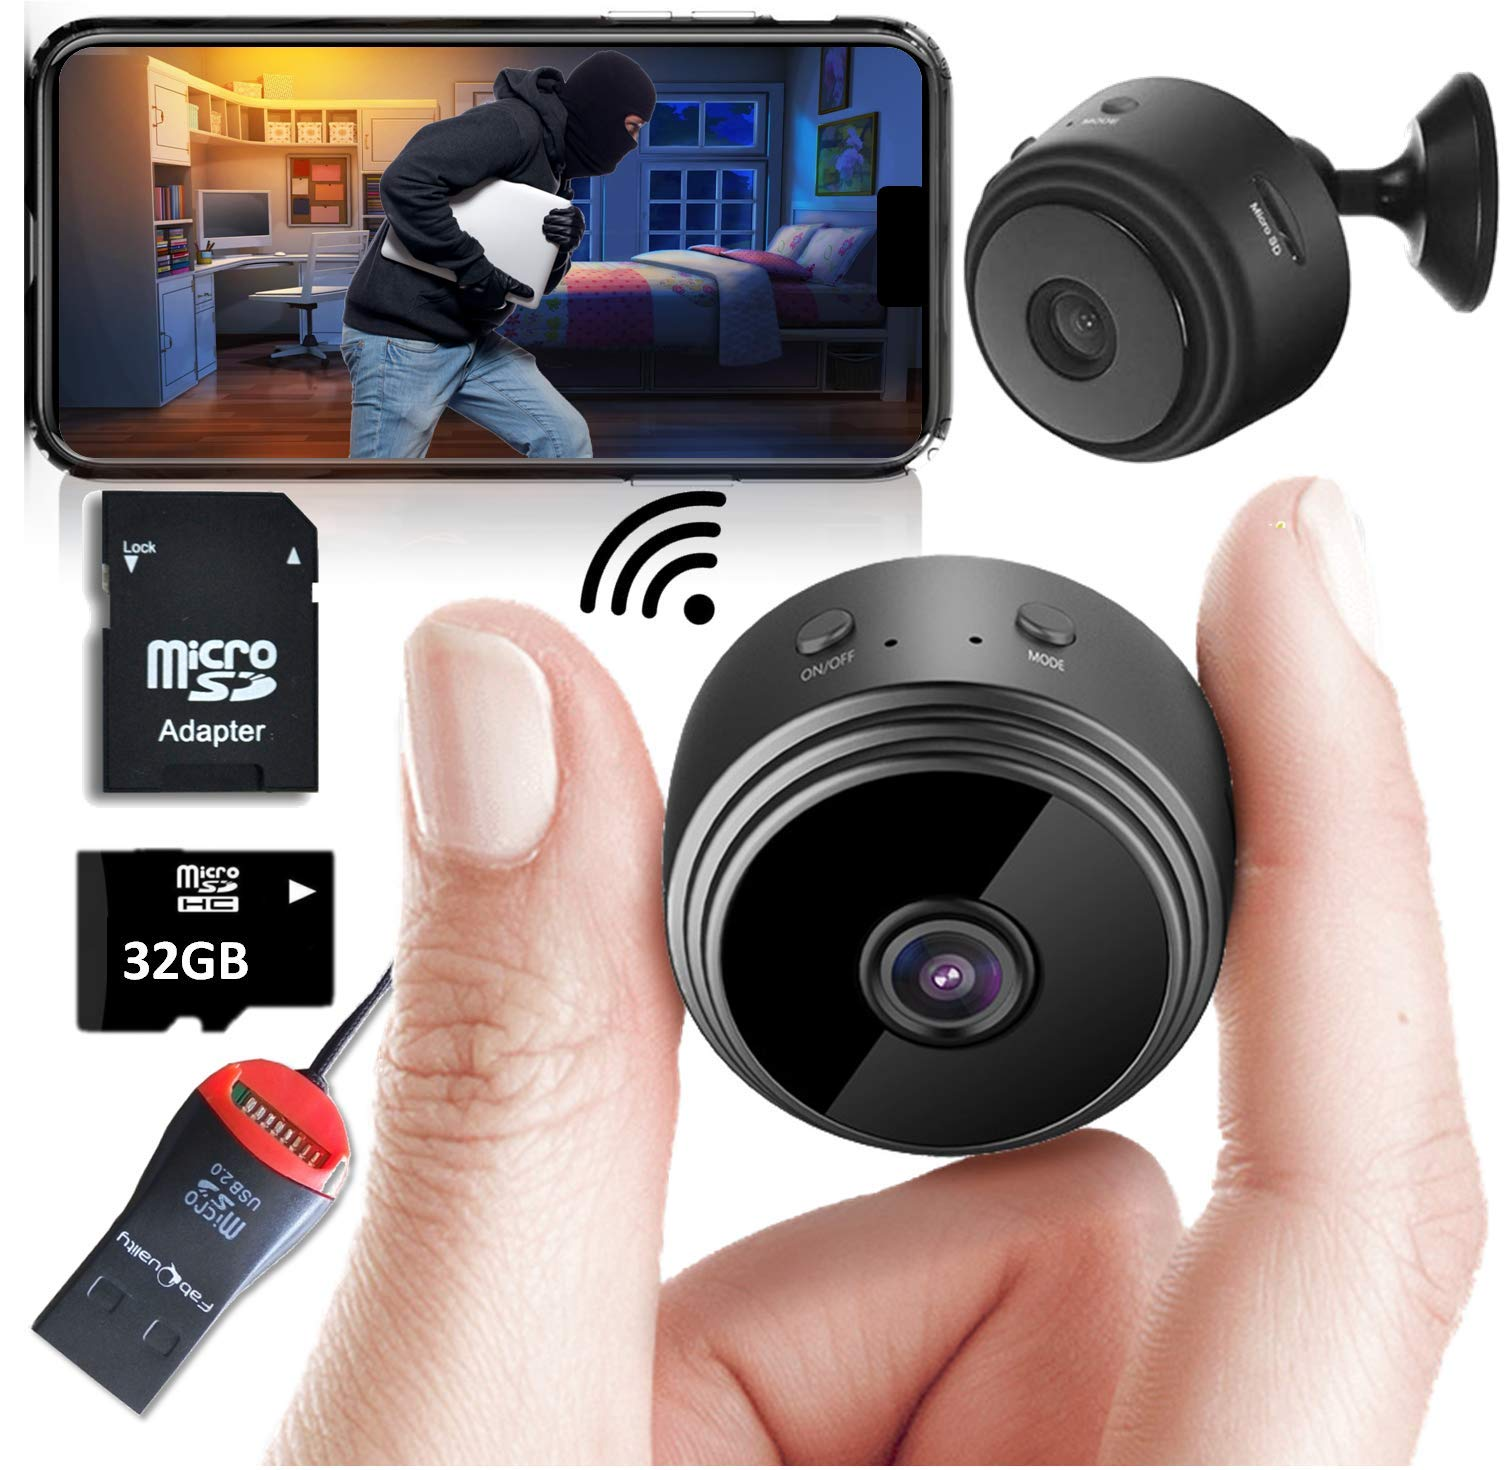 Mini Spy Camera Wireless Hidden Home WiFi Security Cameras with App 1080P, Inc 32GB SD Card + Plus More. Night Vision Motion Activated Indoor Outdoor iPhone/Android Phone Small Nanny Cam for Cars etc by fabquality